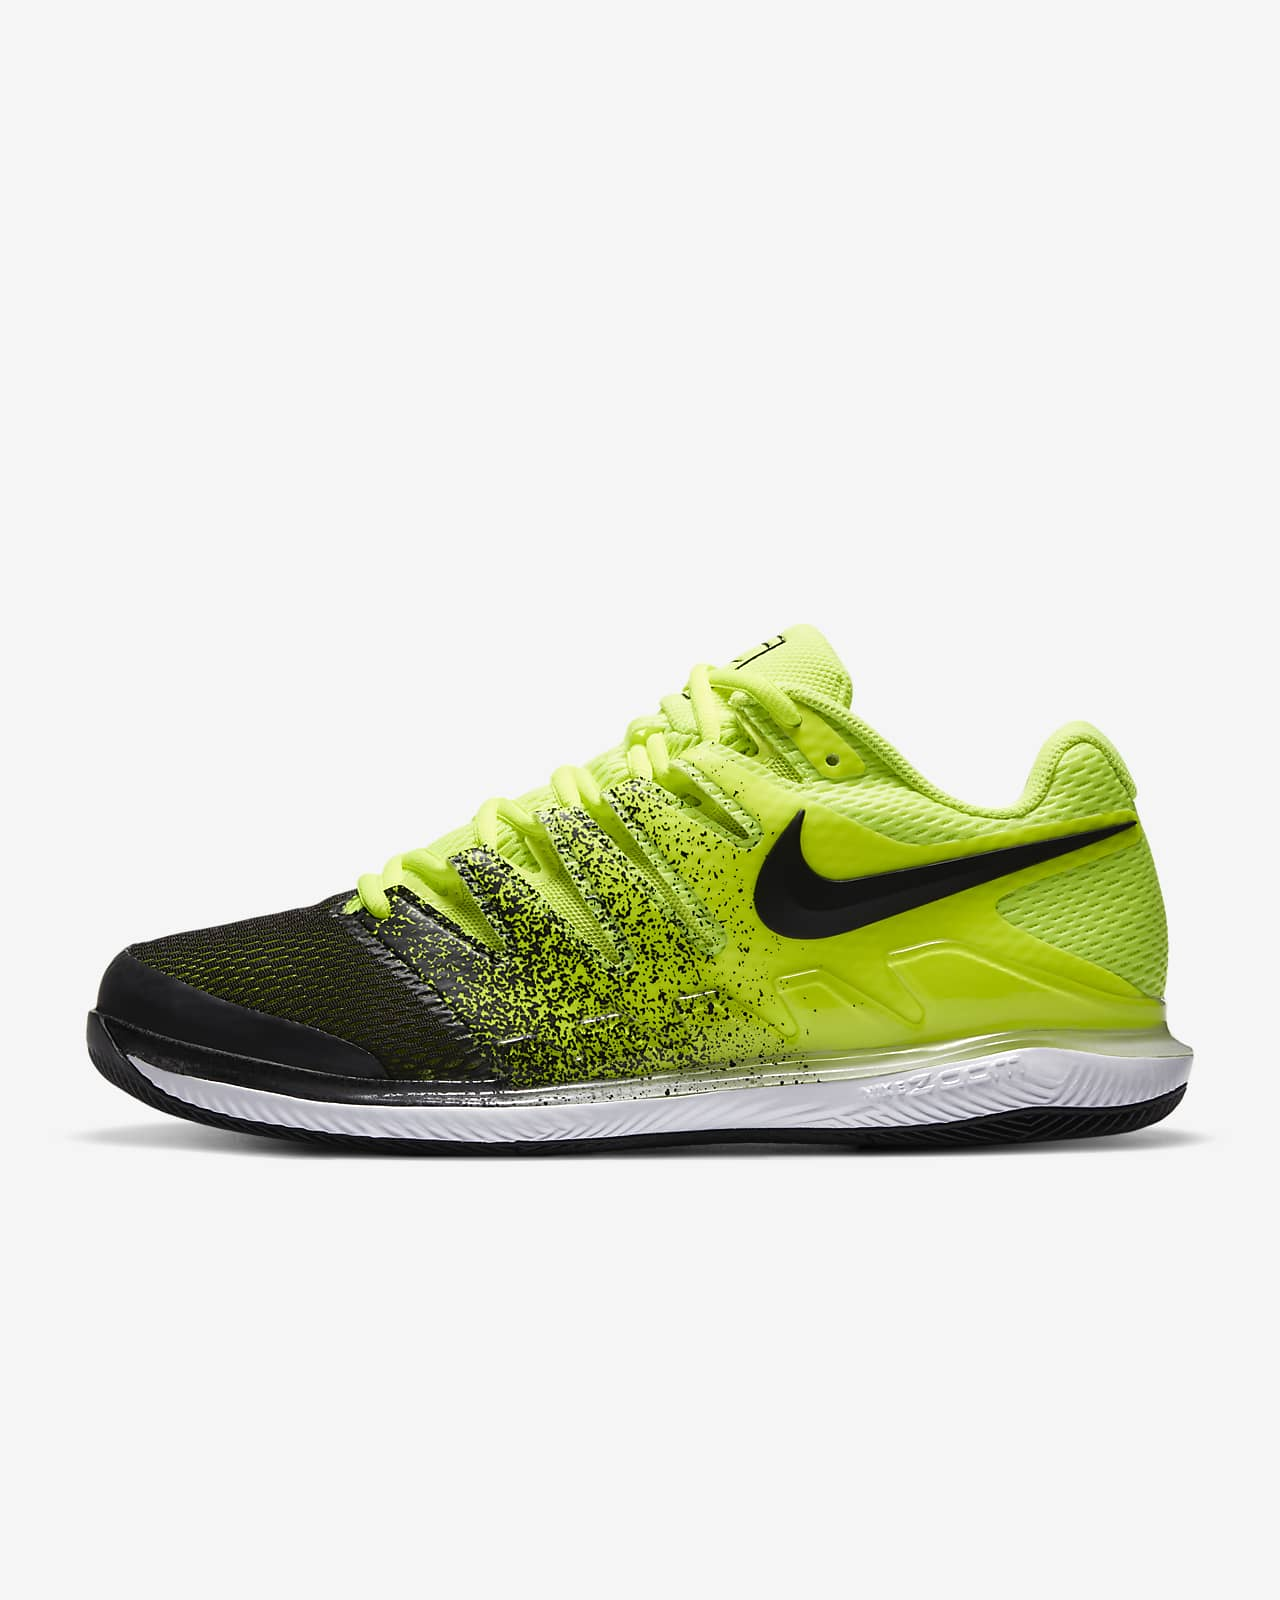 NikeCourt Air Zoom Vapor X Men's Hard